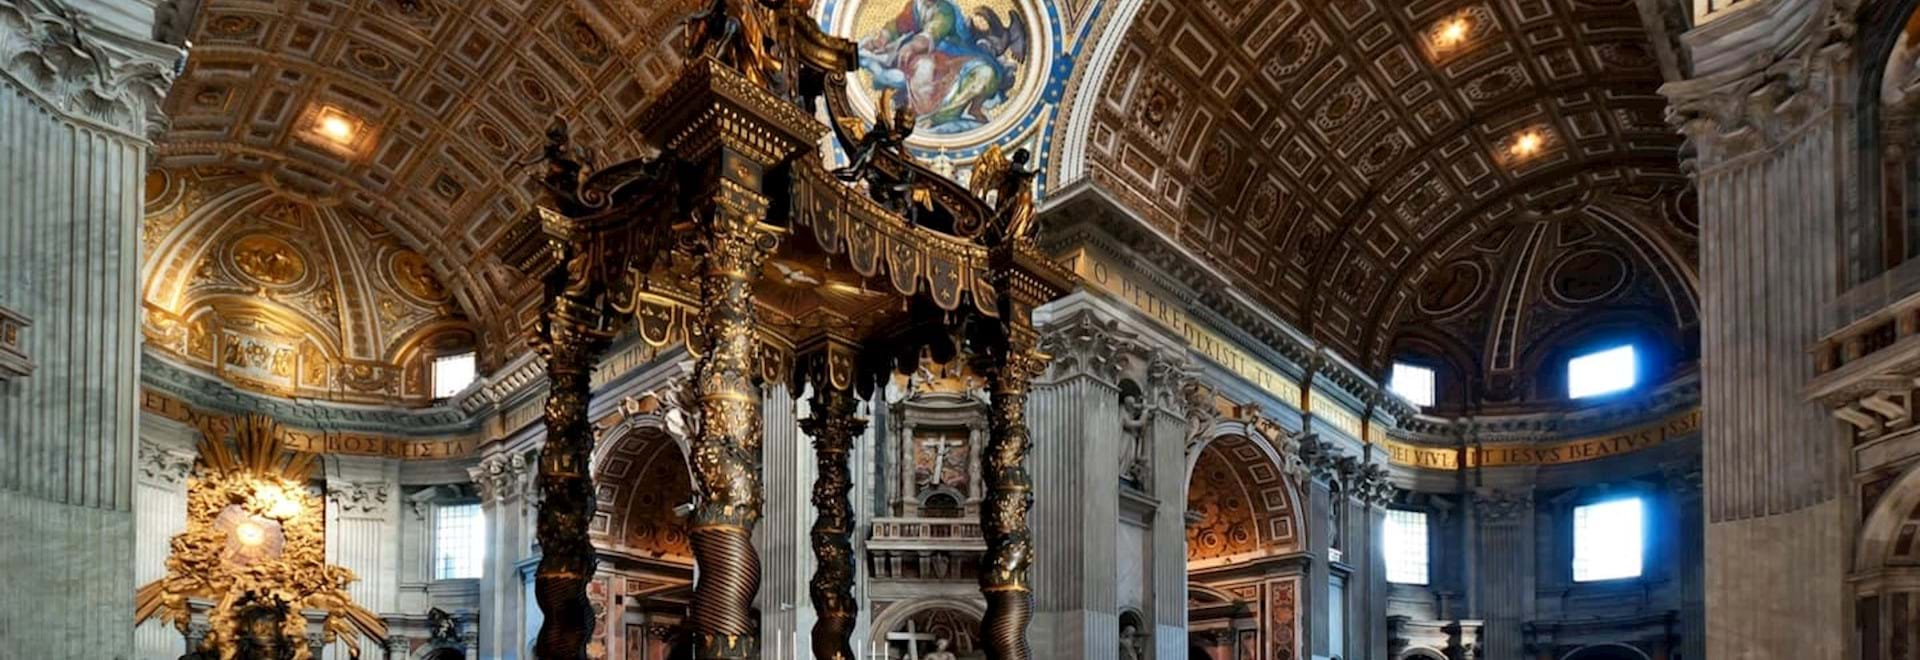 St Peter's Basilica Altar in the Vatican